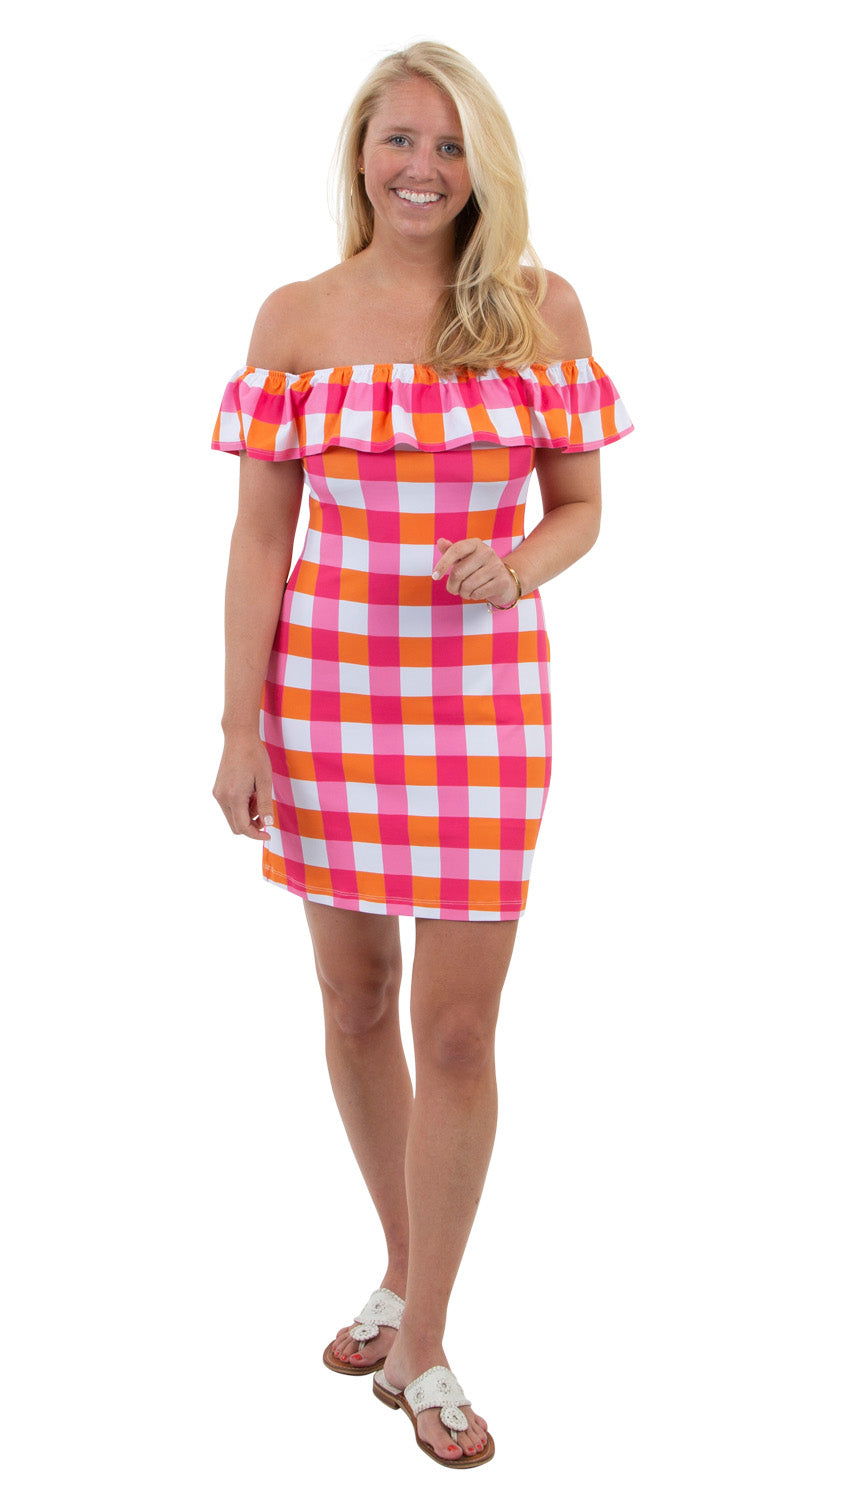 Shoreline Dress - Chatham Check Pink/Orange